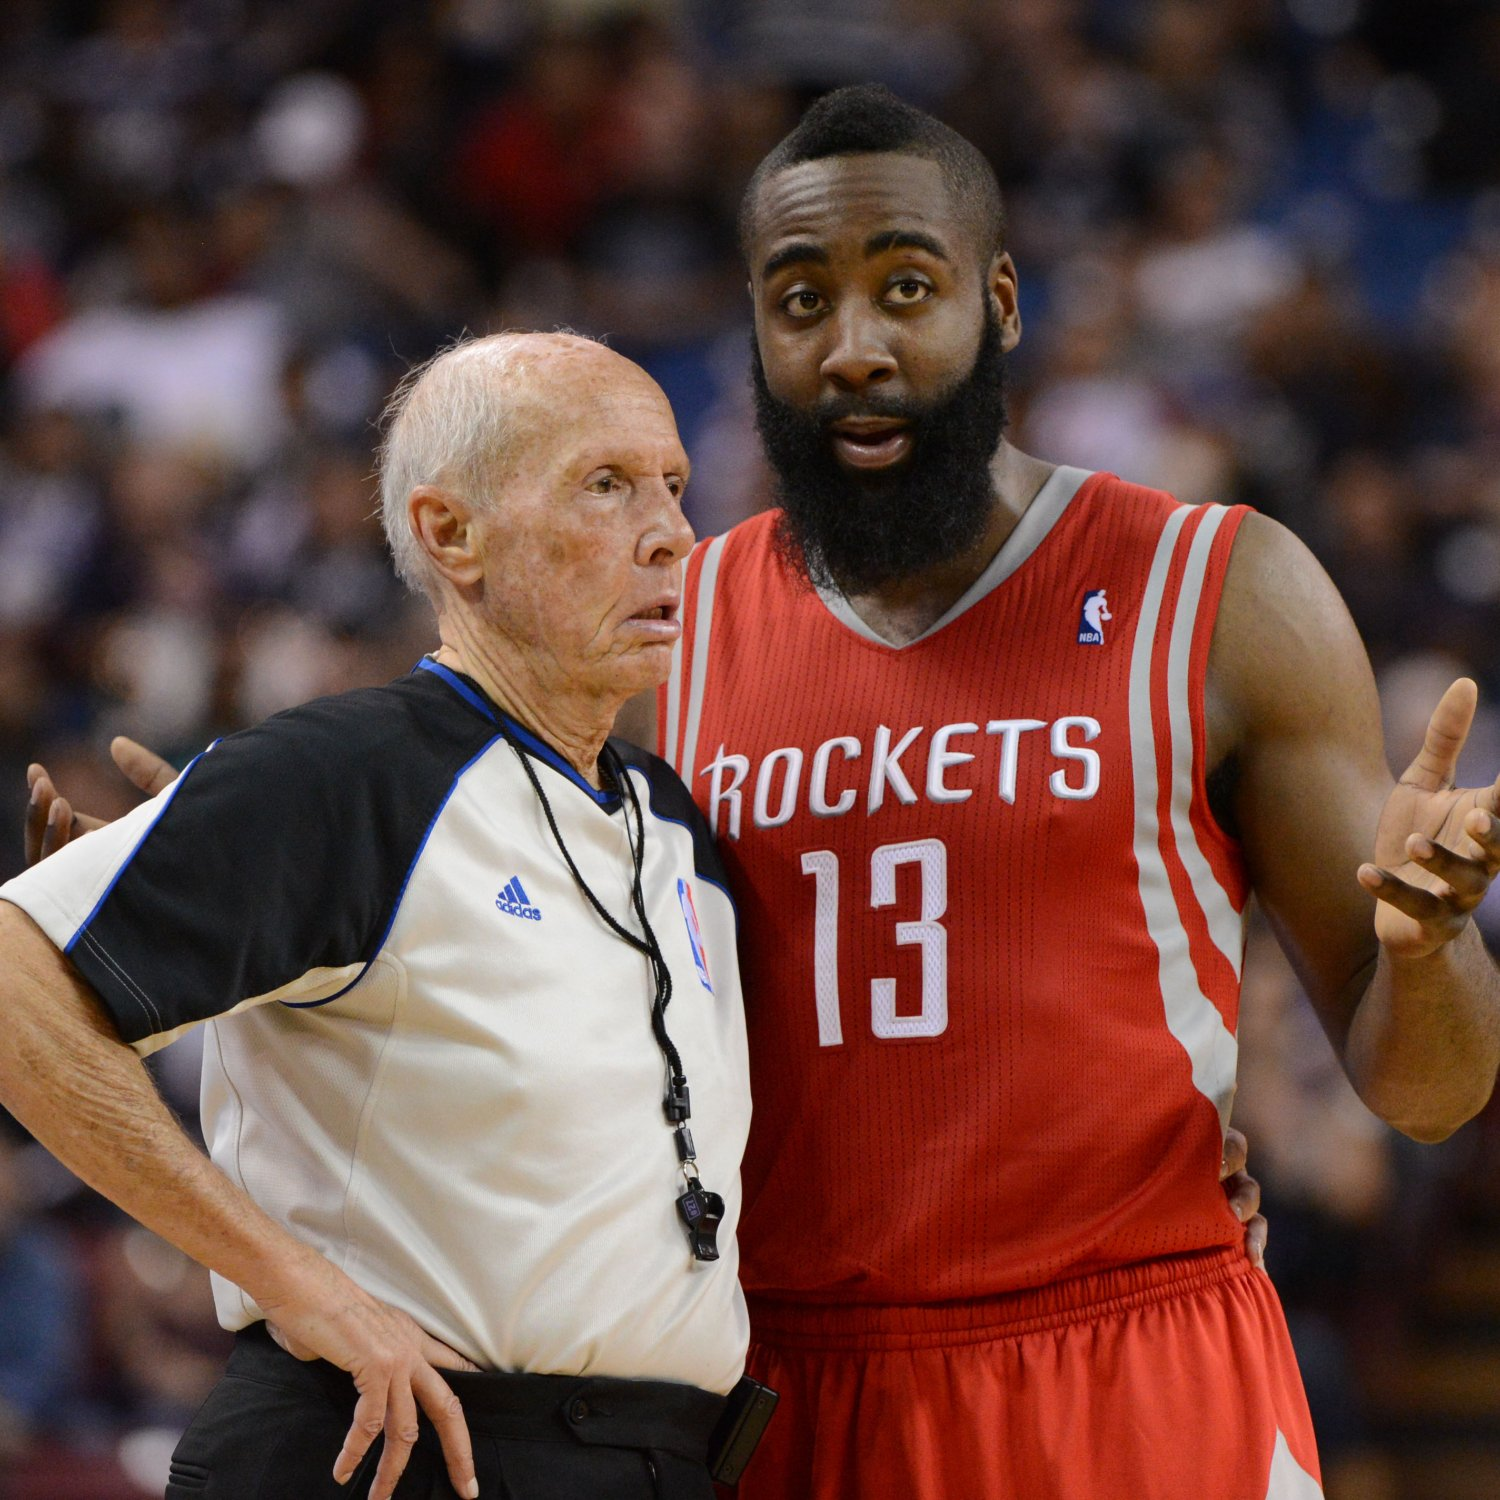 James Harden Injury Report: James Harden Injury: Updates On Rockets Star's Ankle